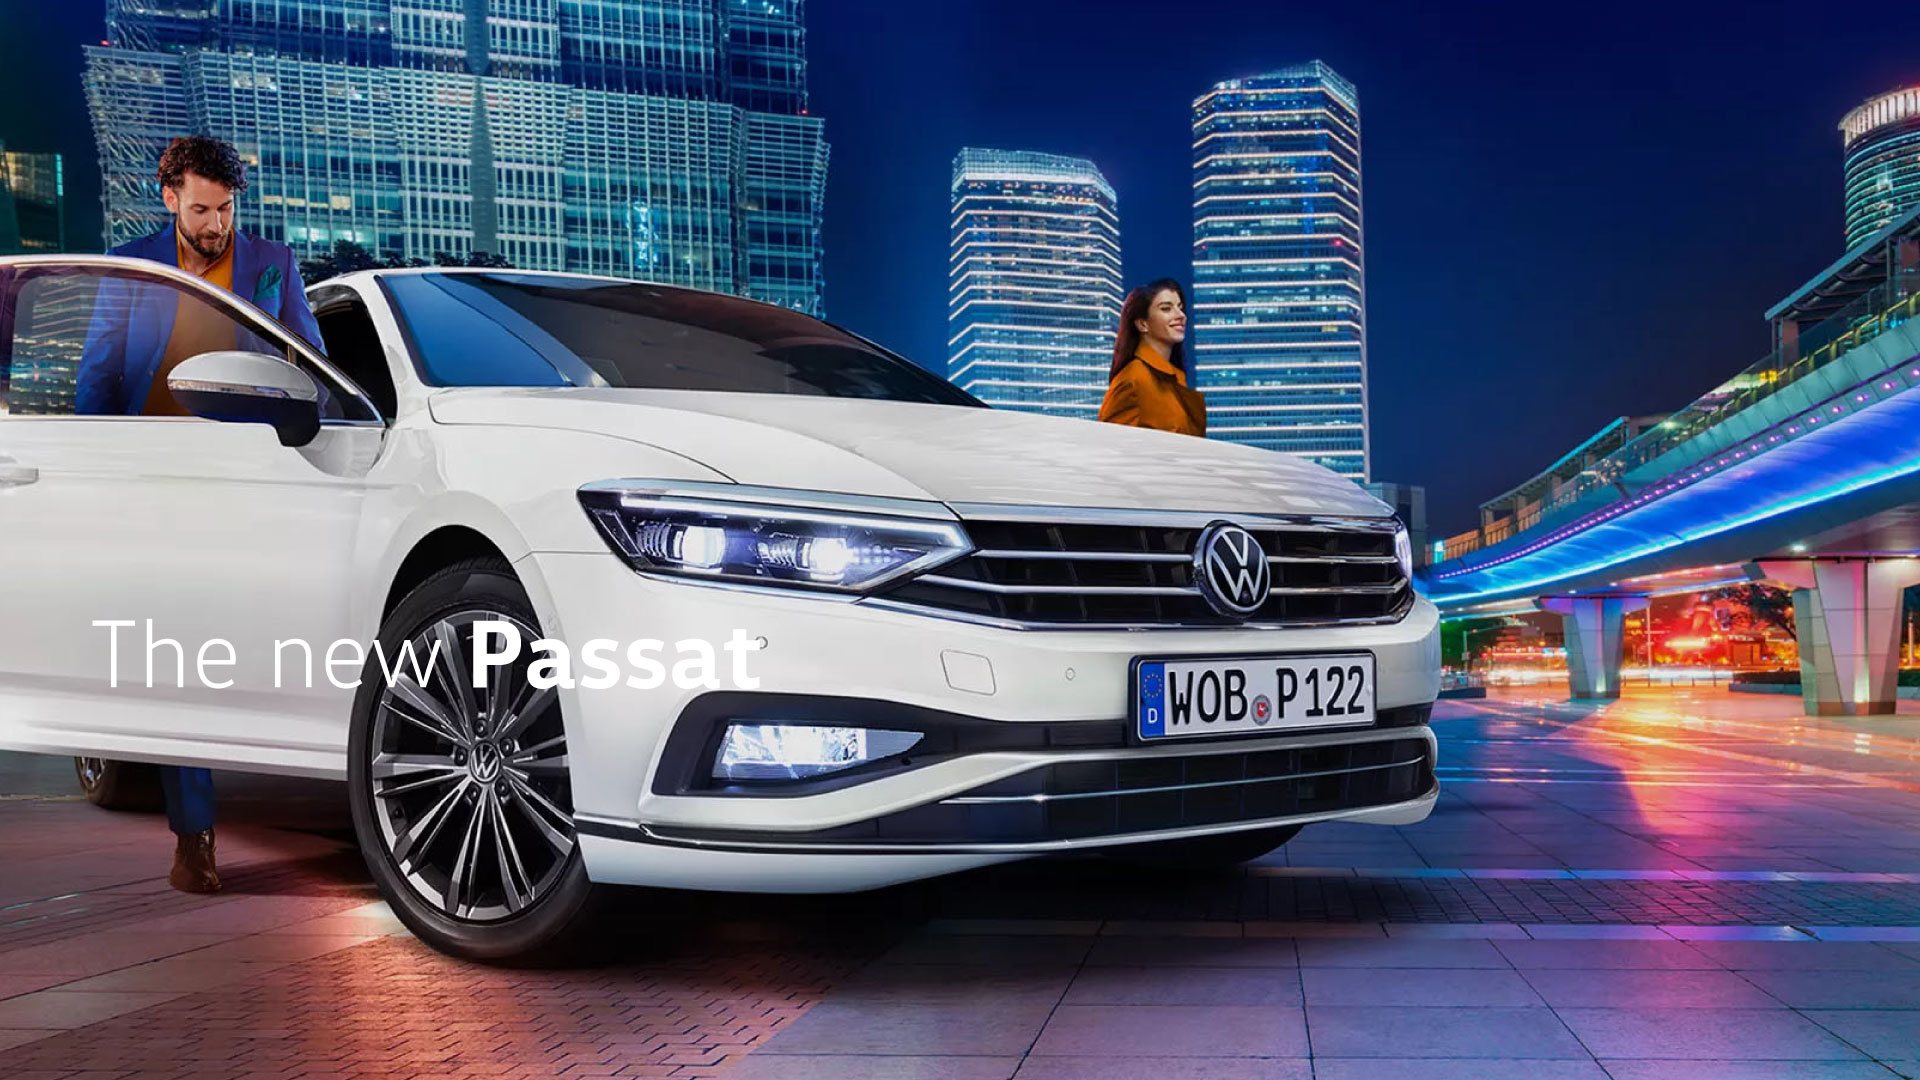 The new Passat